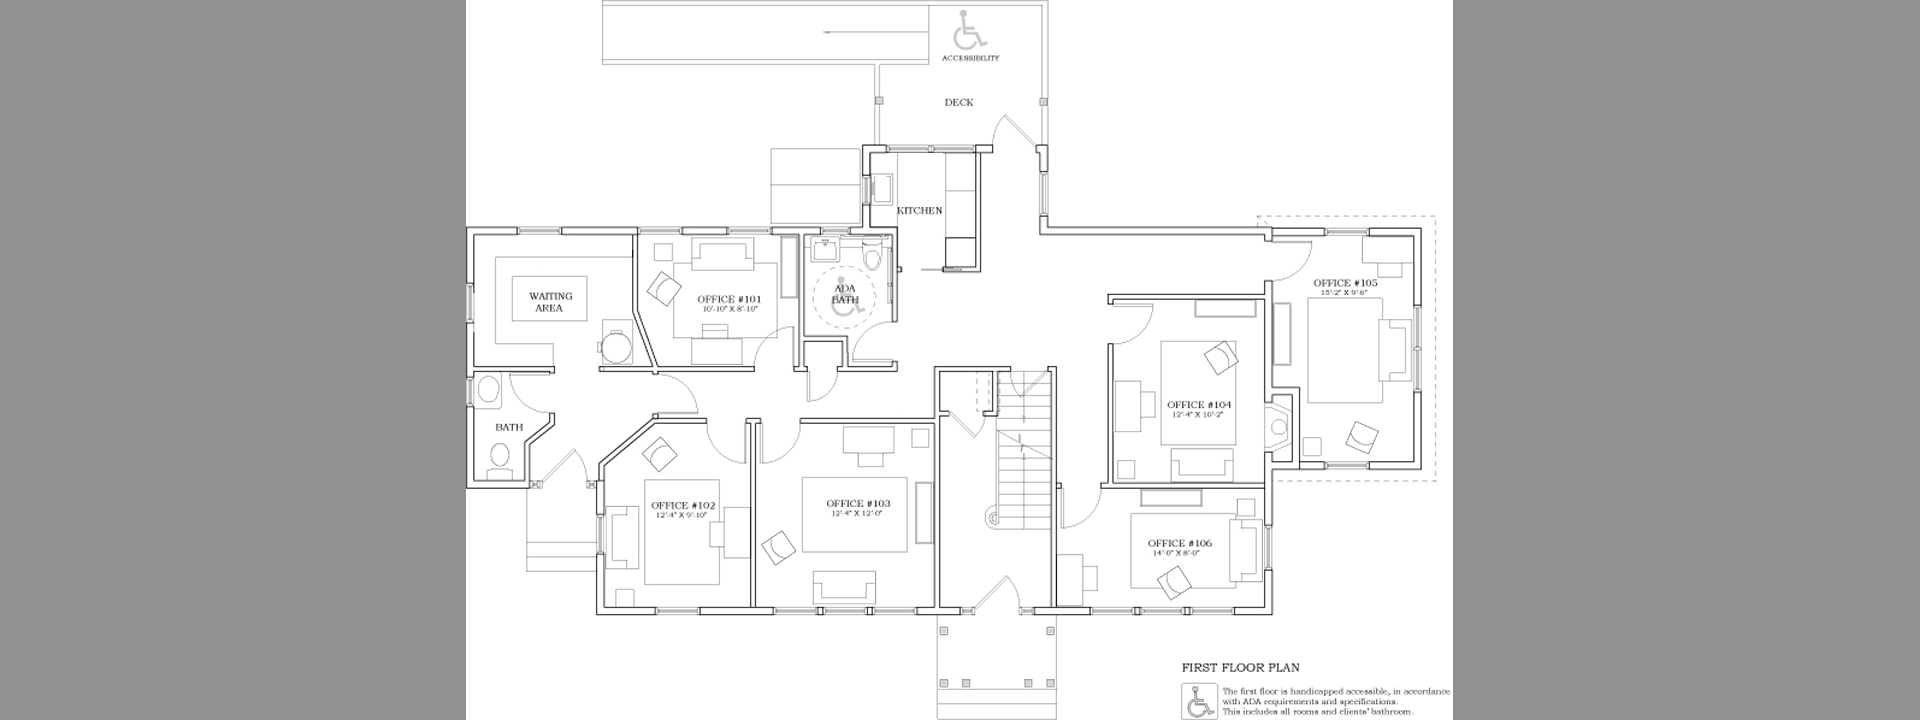 1st floor plan riverhead solutions thinking in a new space 1st floor plan